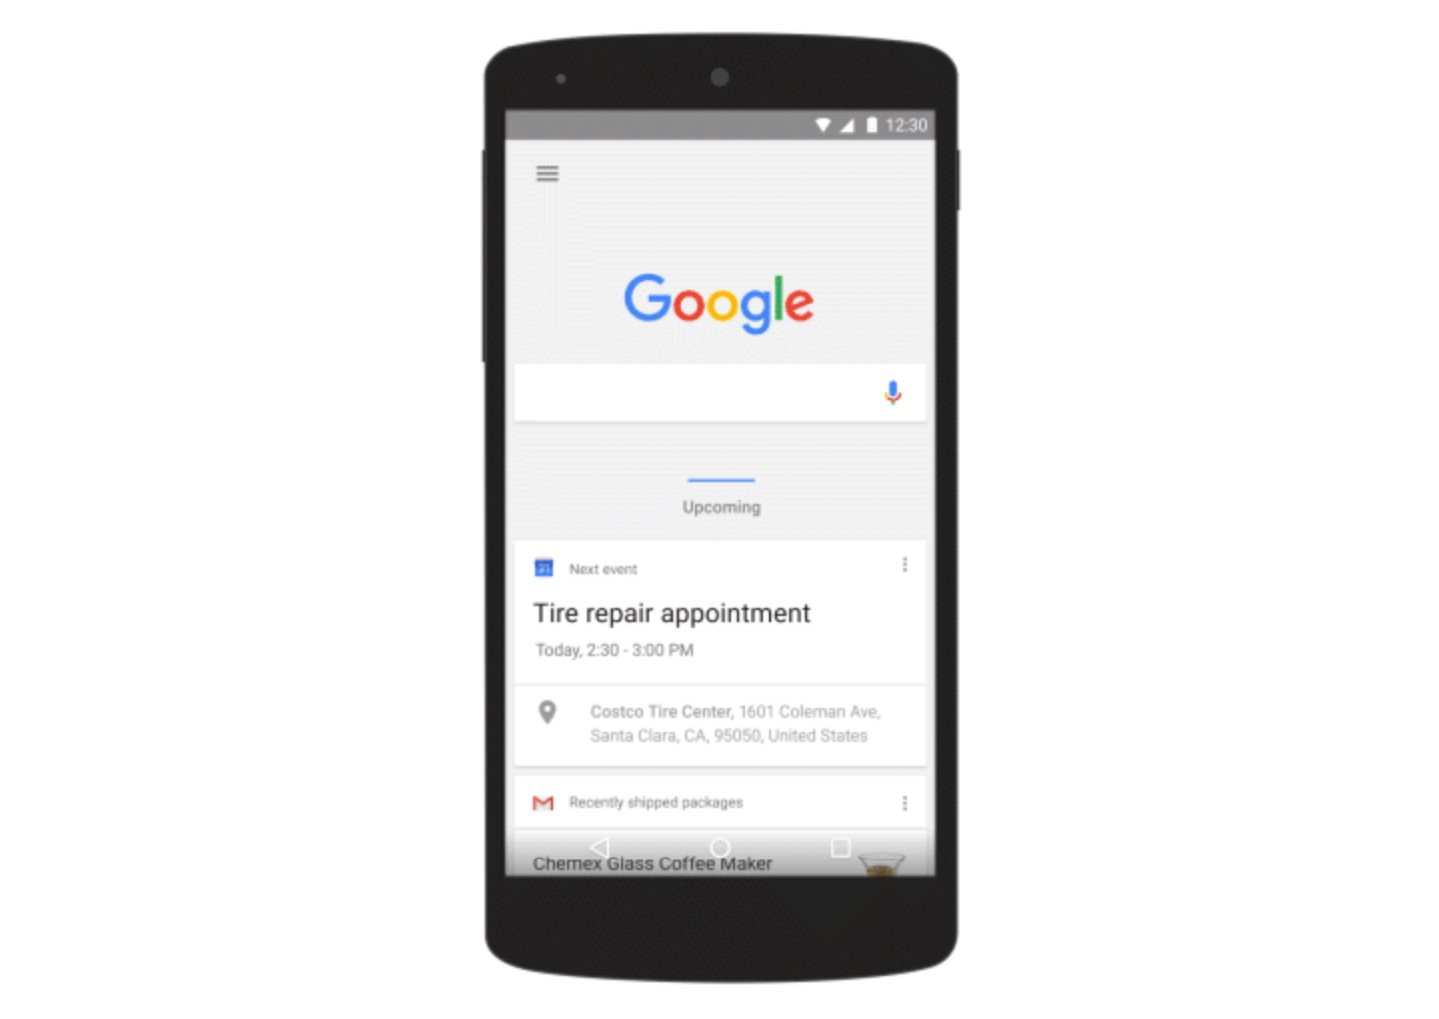 Google S New Design Language Makes Its Way To Android S Search Bar Google Now And The Mobile Web Video